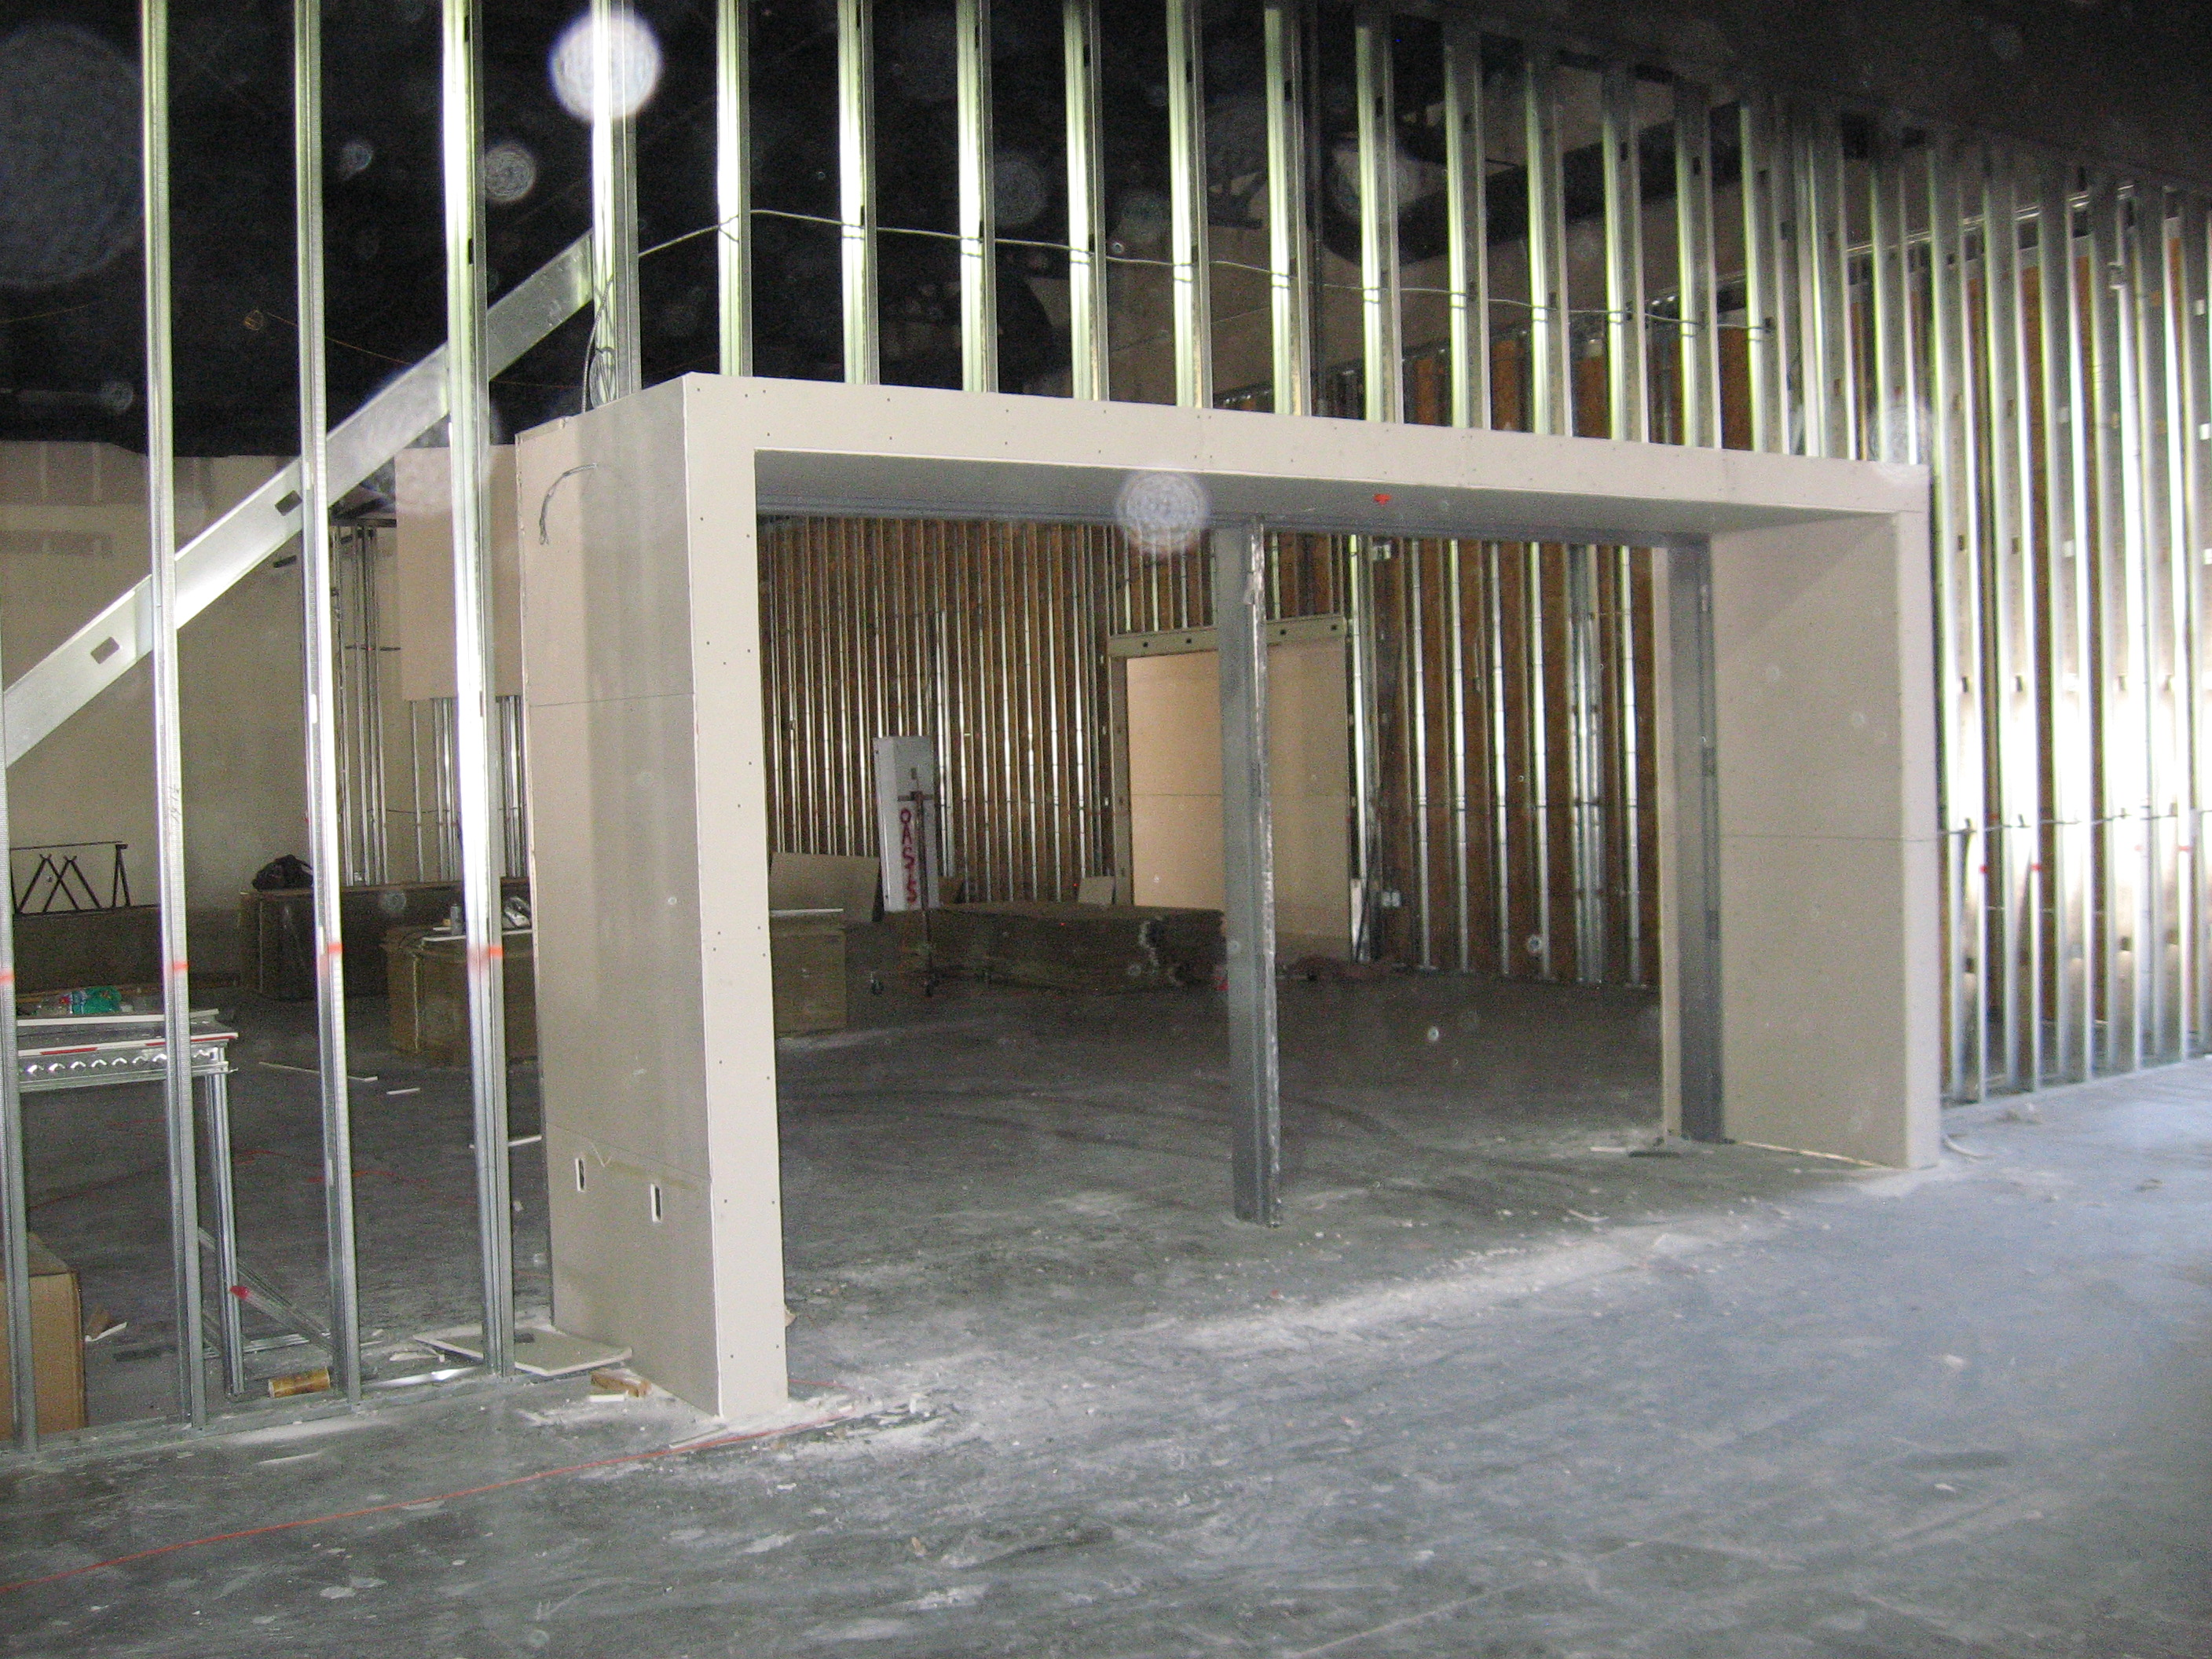 Dry Wall Construction : March th construction update new photos second mile